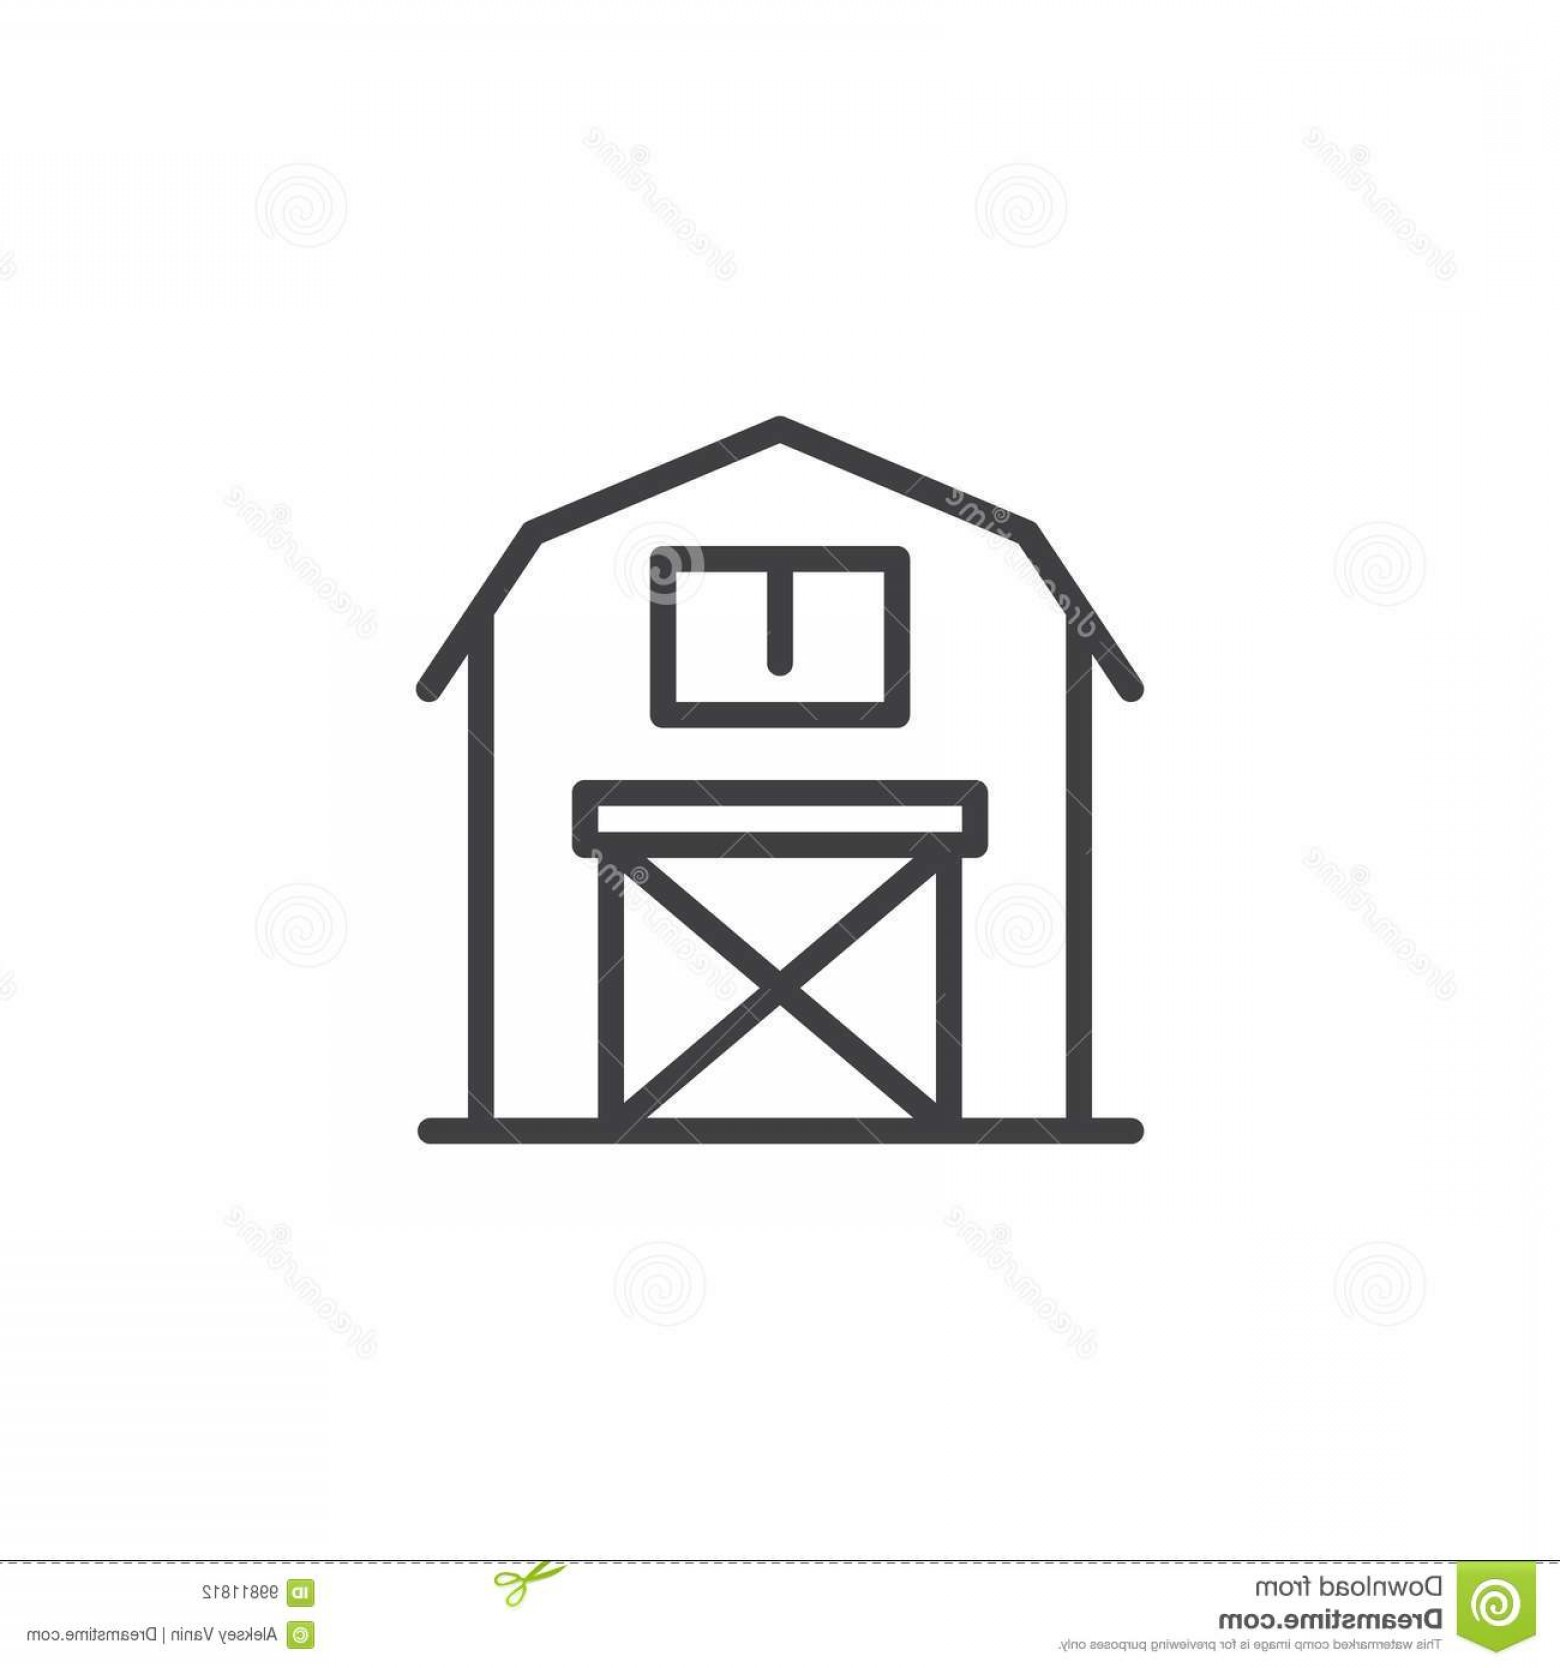 Barn Outline Vector: Barn Line Icon Outline Vector Sign Linear Style Pictogram Isolated White Symbol Logo Illustration Editable Stroke Barn Line Image